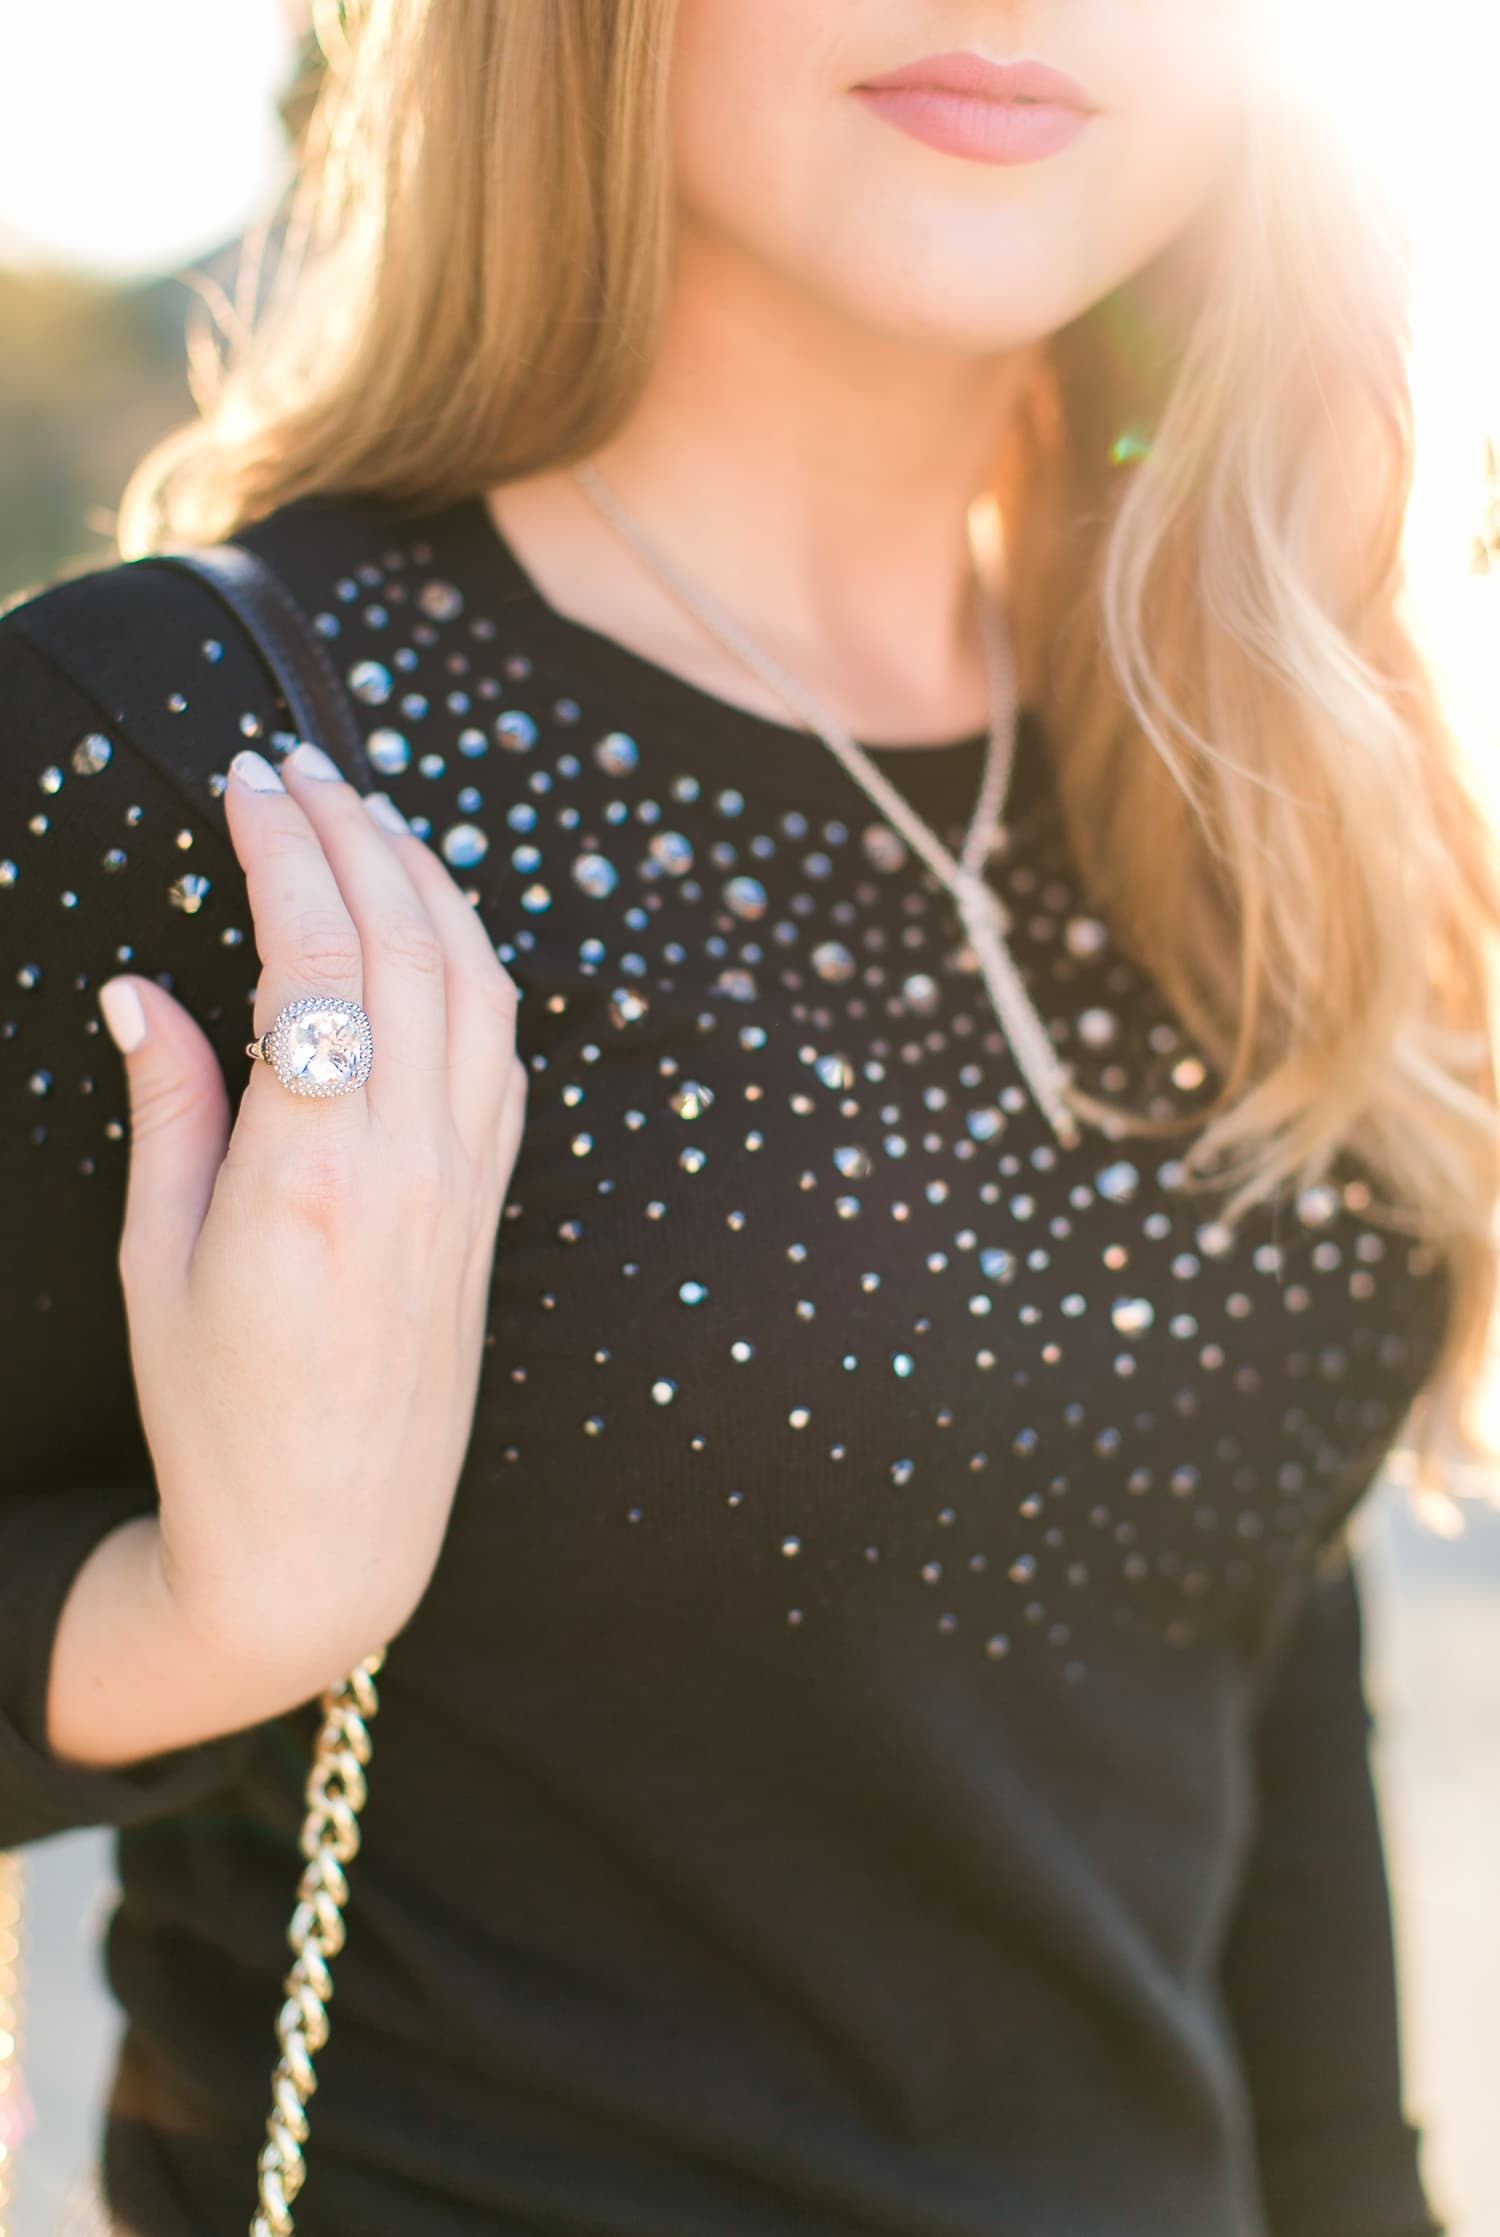 philip havriel ring date night sunset golden hour outfit